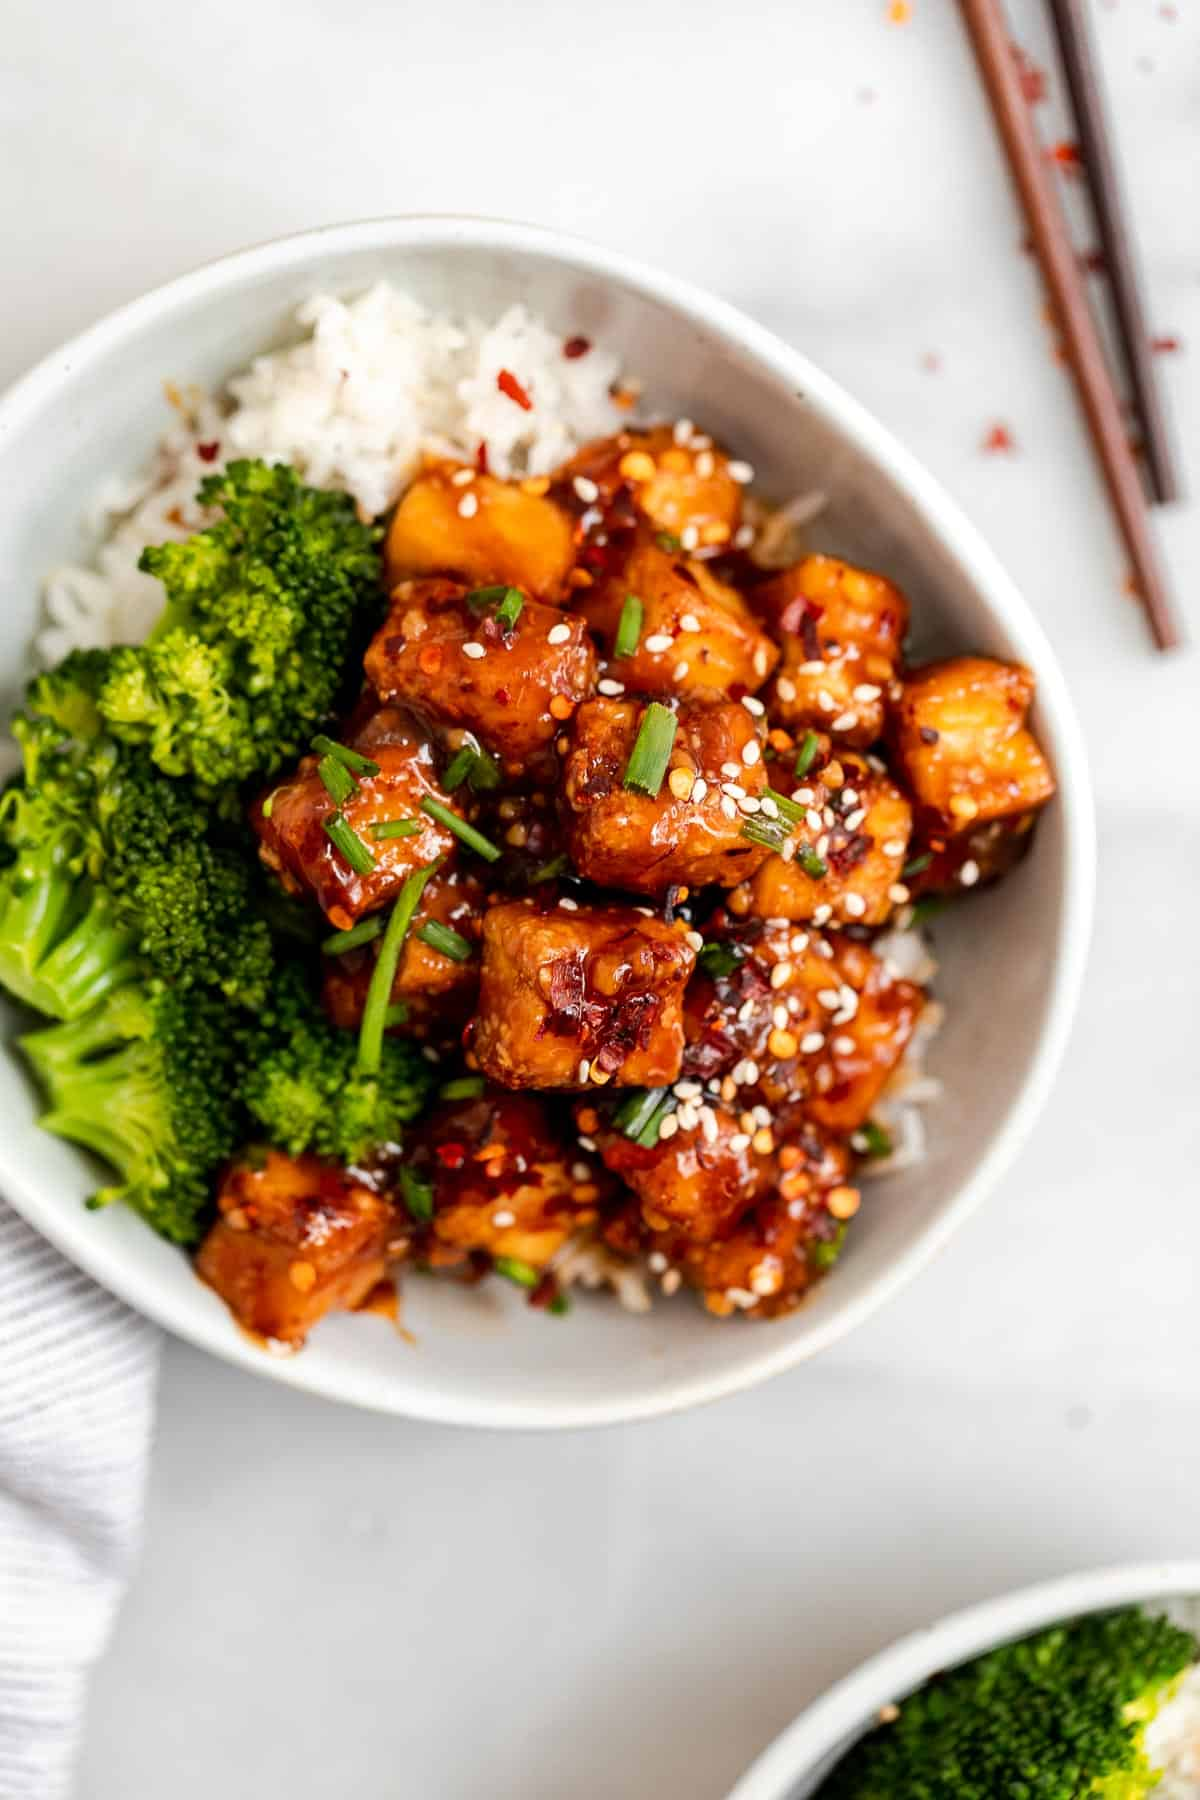 up close image of the air fried tofu in a bowl with broccoli